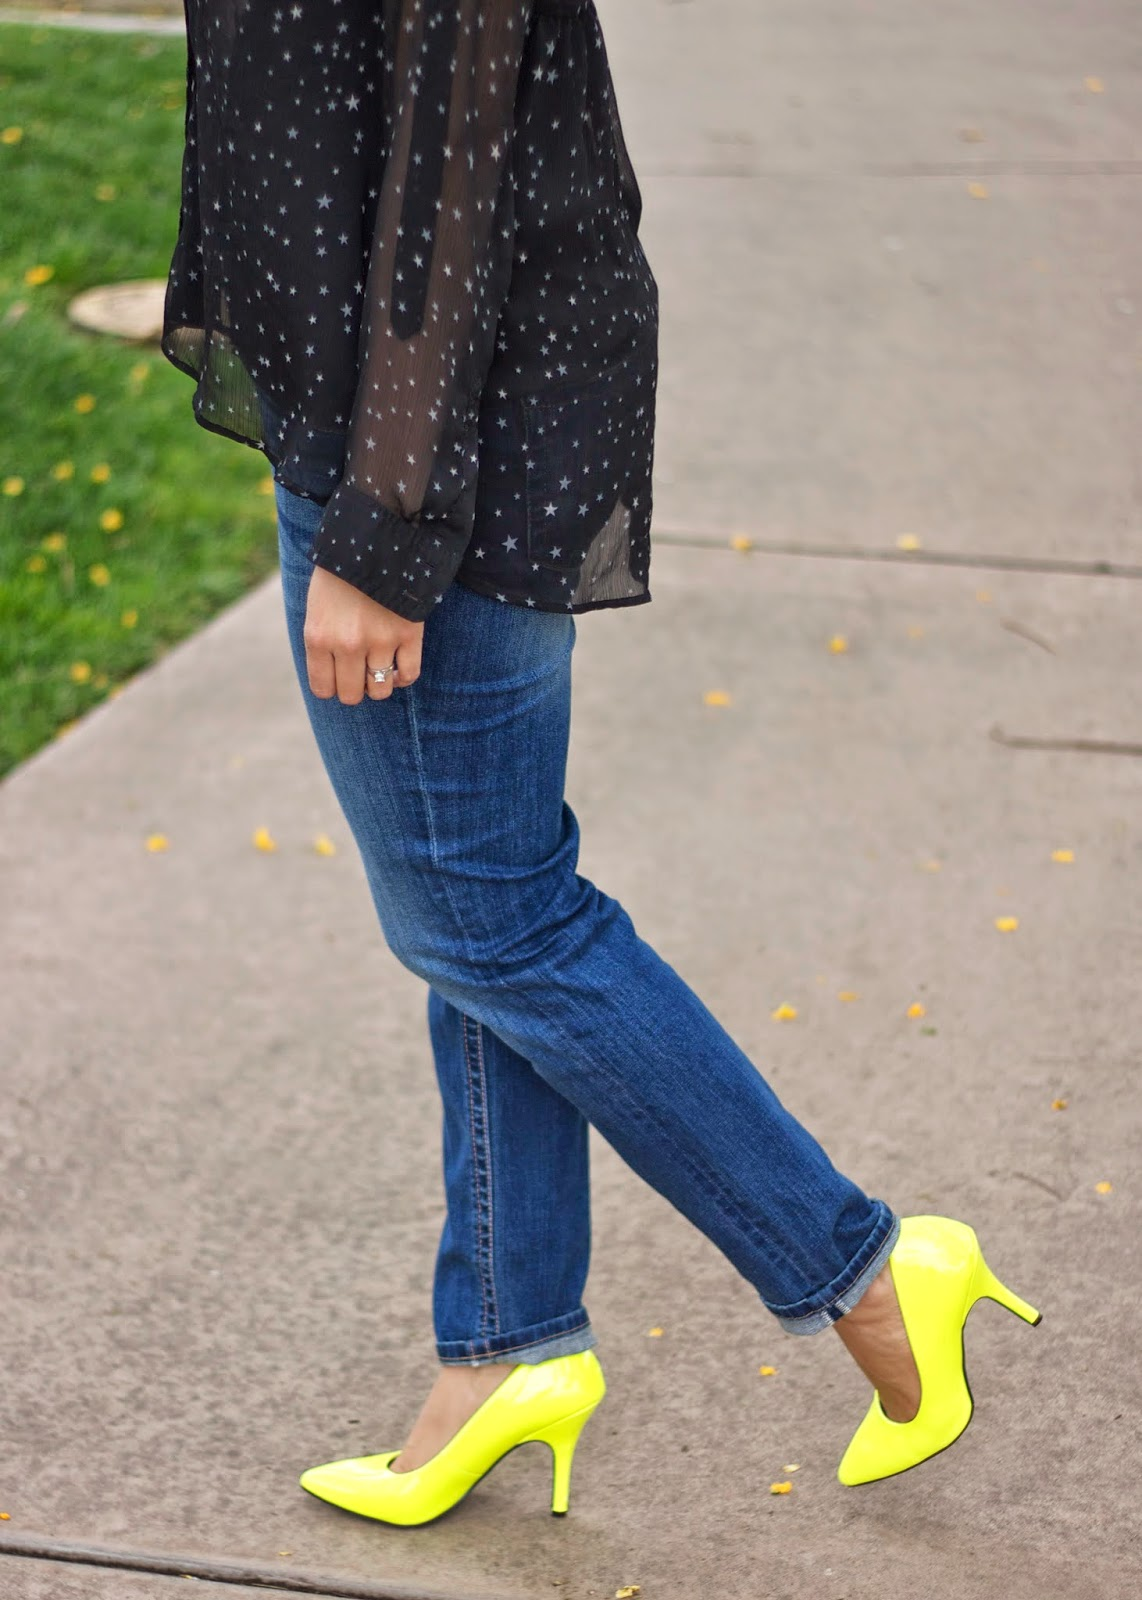 Neon yellow heels with jeans, denim with neon yellow heels, pop of neon yellow